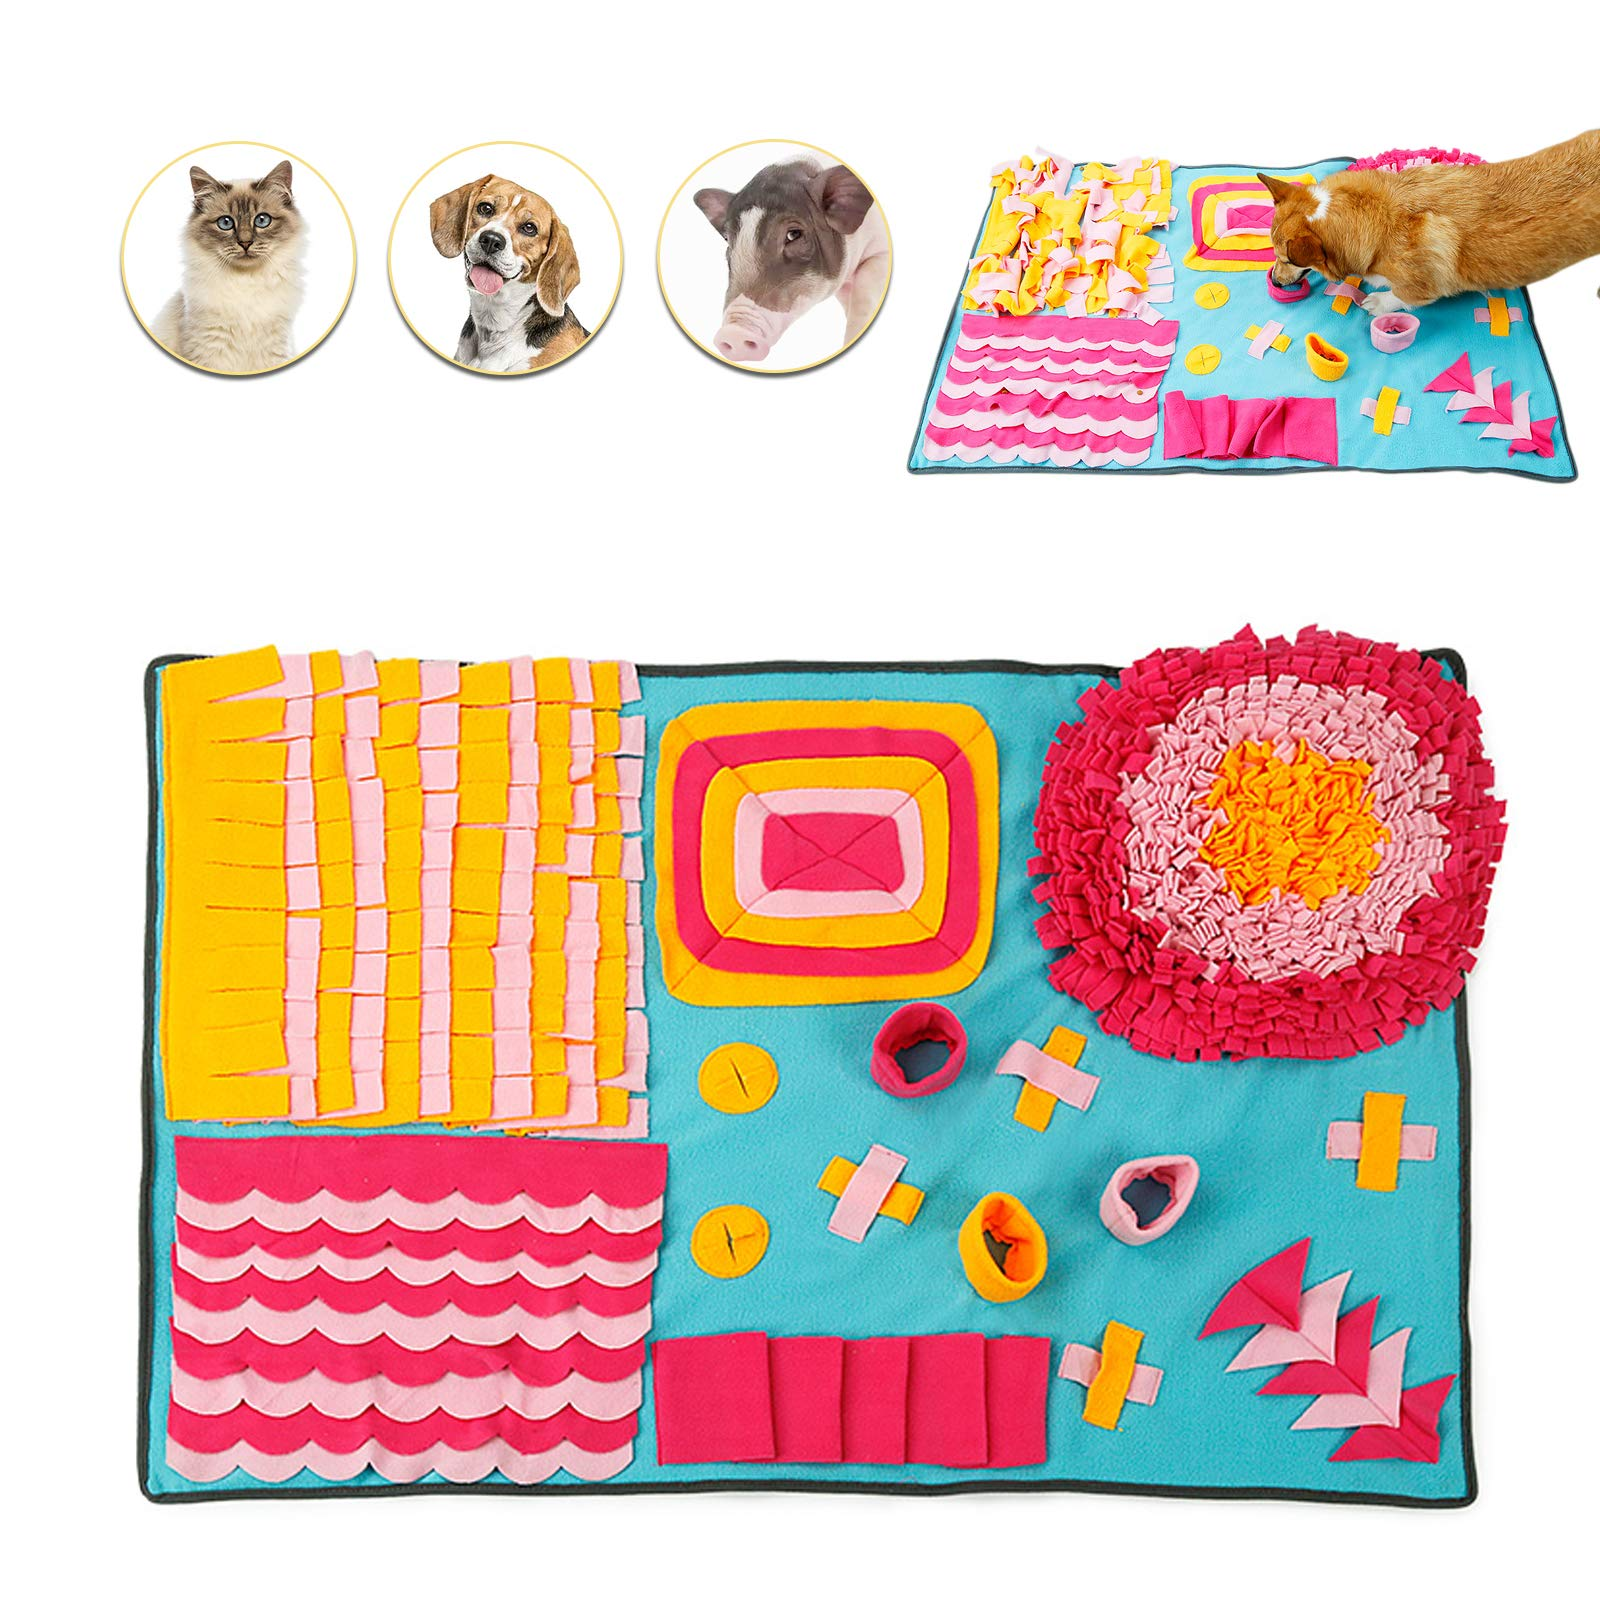 Petvins Dog Snuffle Mat Treat Blanket, Pet Puzzle Activity Mat for Stress Release, Nose Work Mat for Slow Feeding and Foraging Training Colorful by Petvins